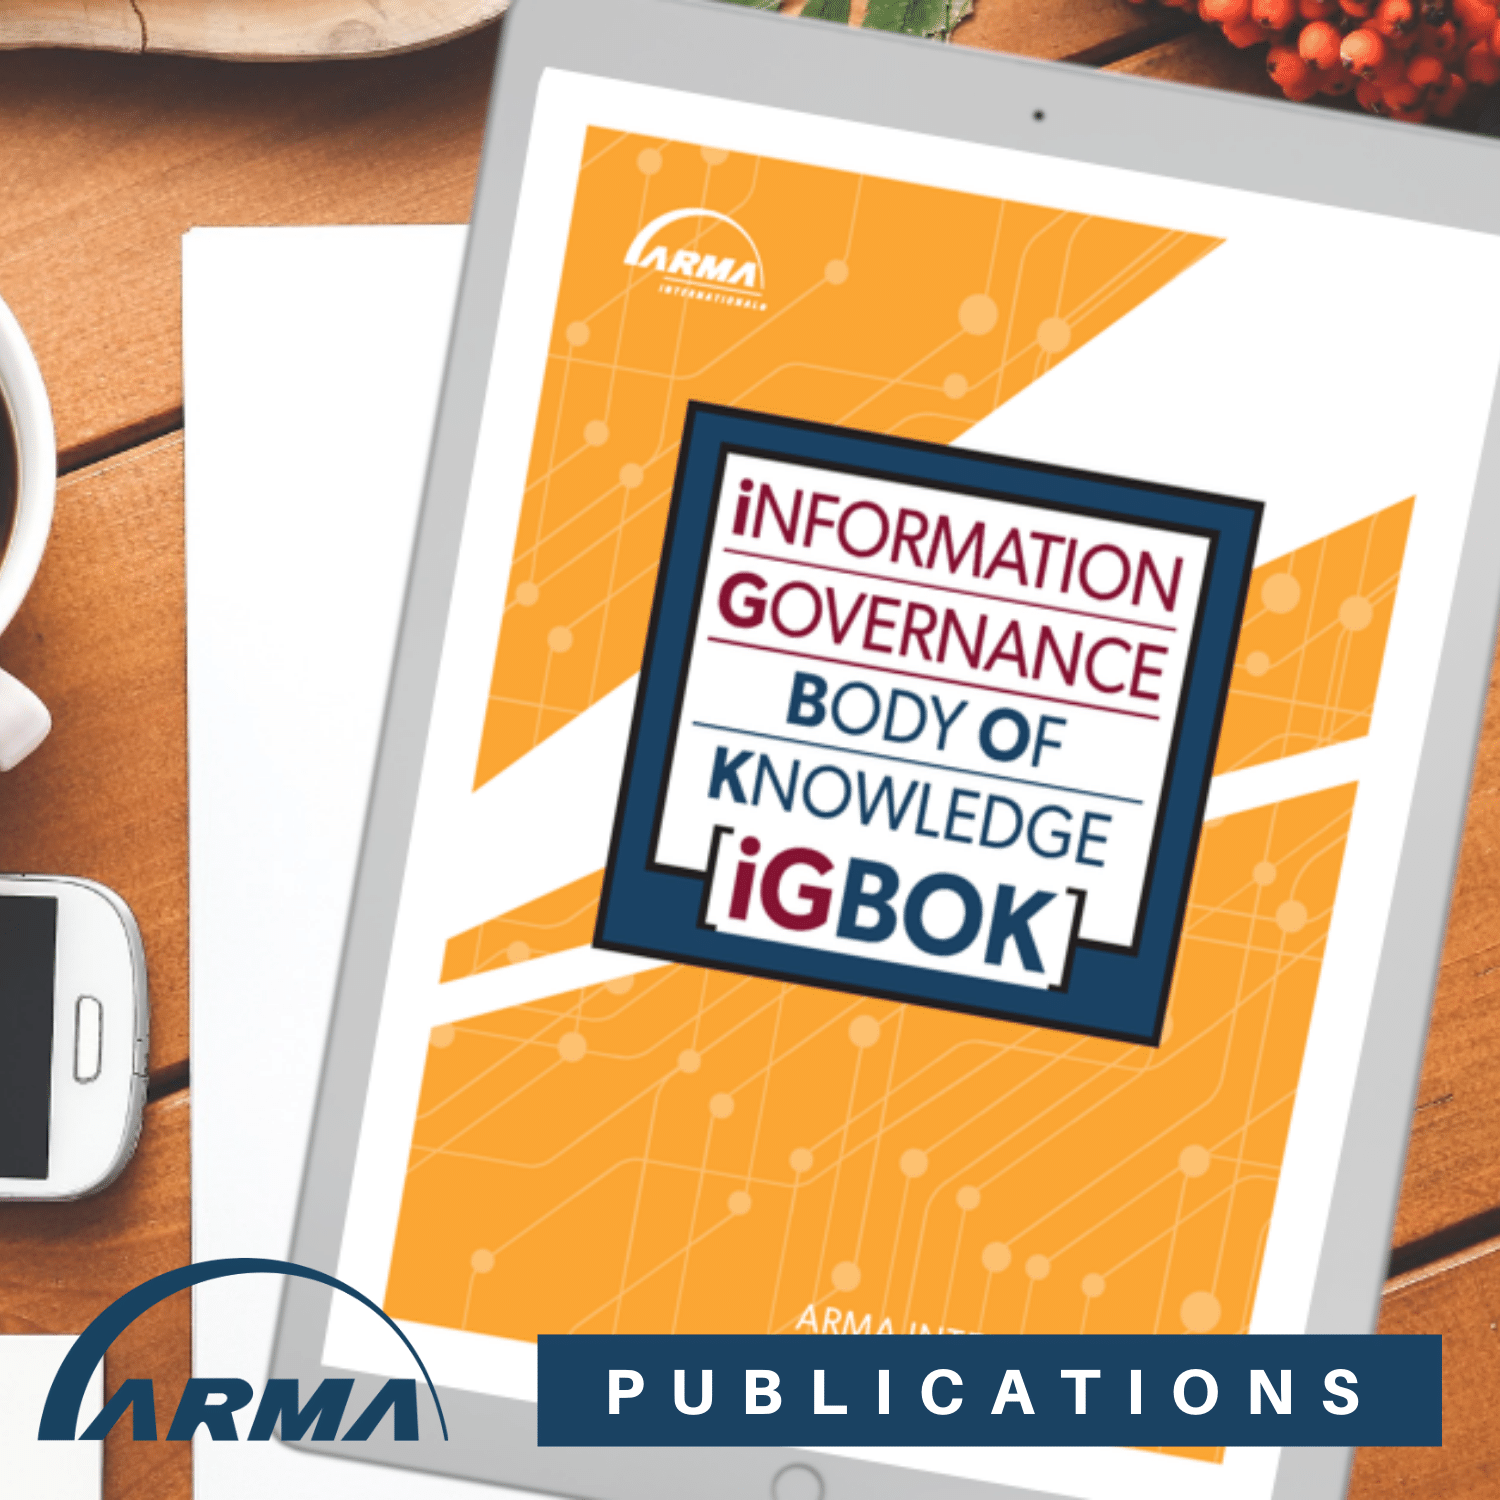 Information Governance Body of Knowledge (IGBOK)